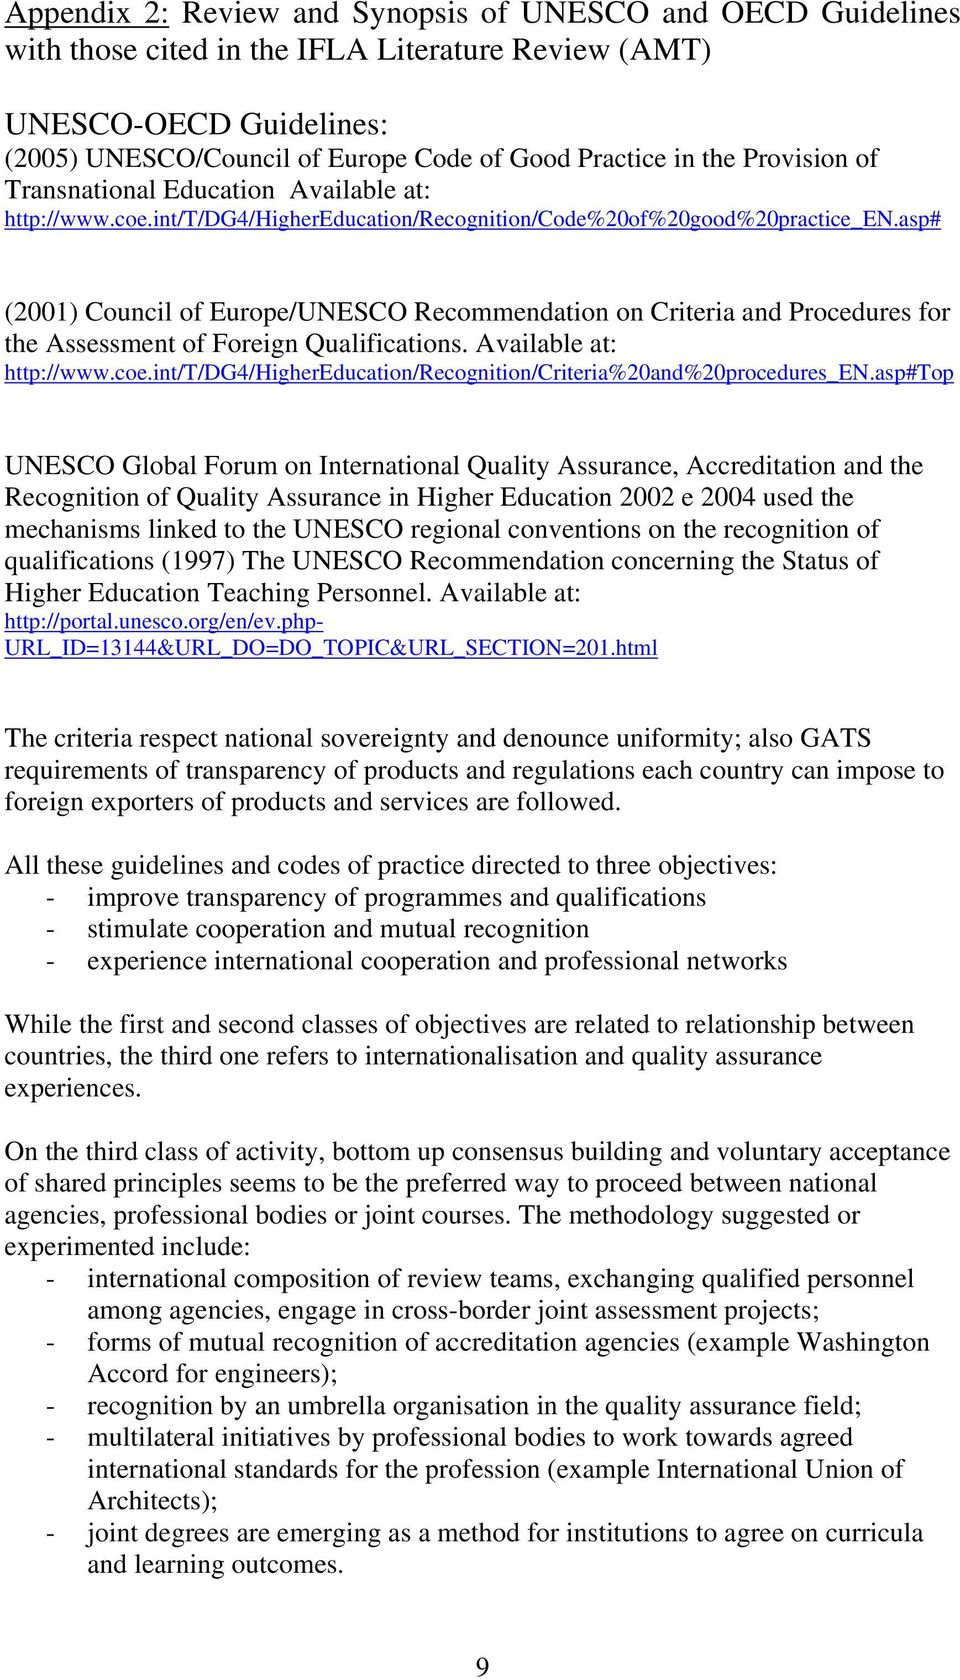 asp# (2001) Council of Europe/UNESCO Recommendation on Criteria and Procedures for the Assessment of Foreign Qualifications. Available at: http://www.coe.